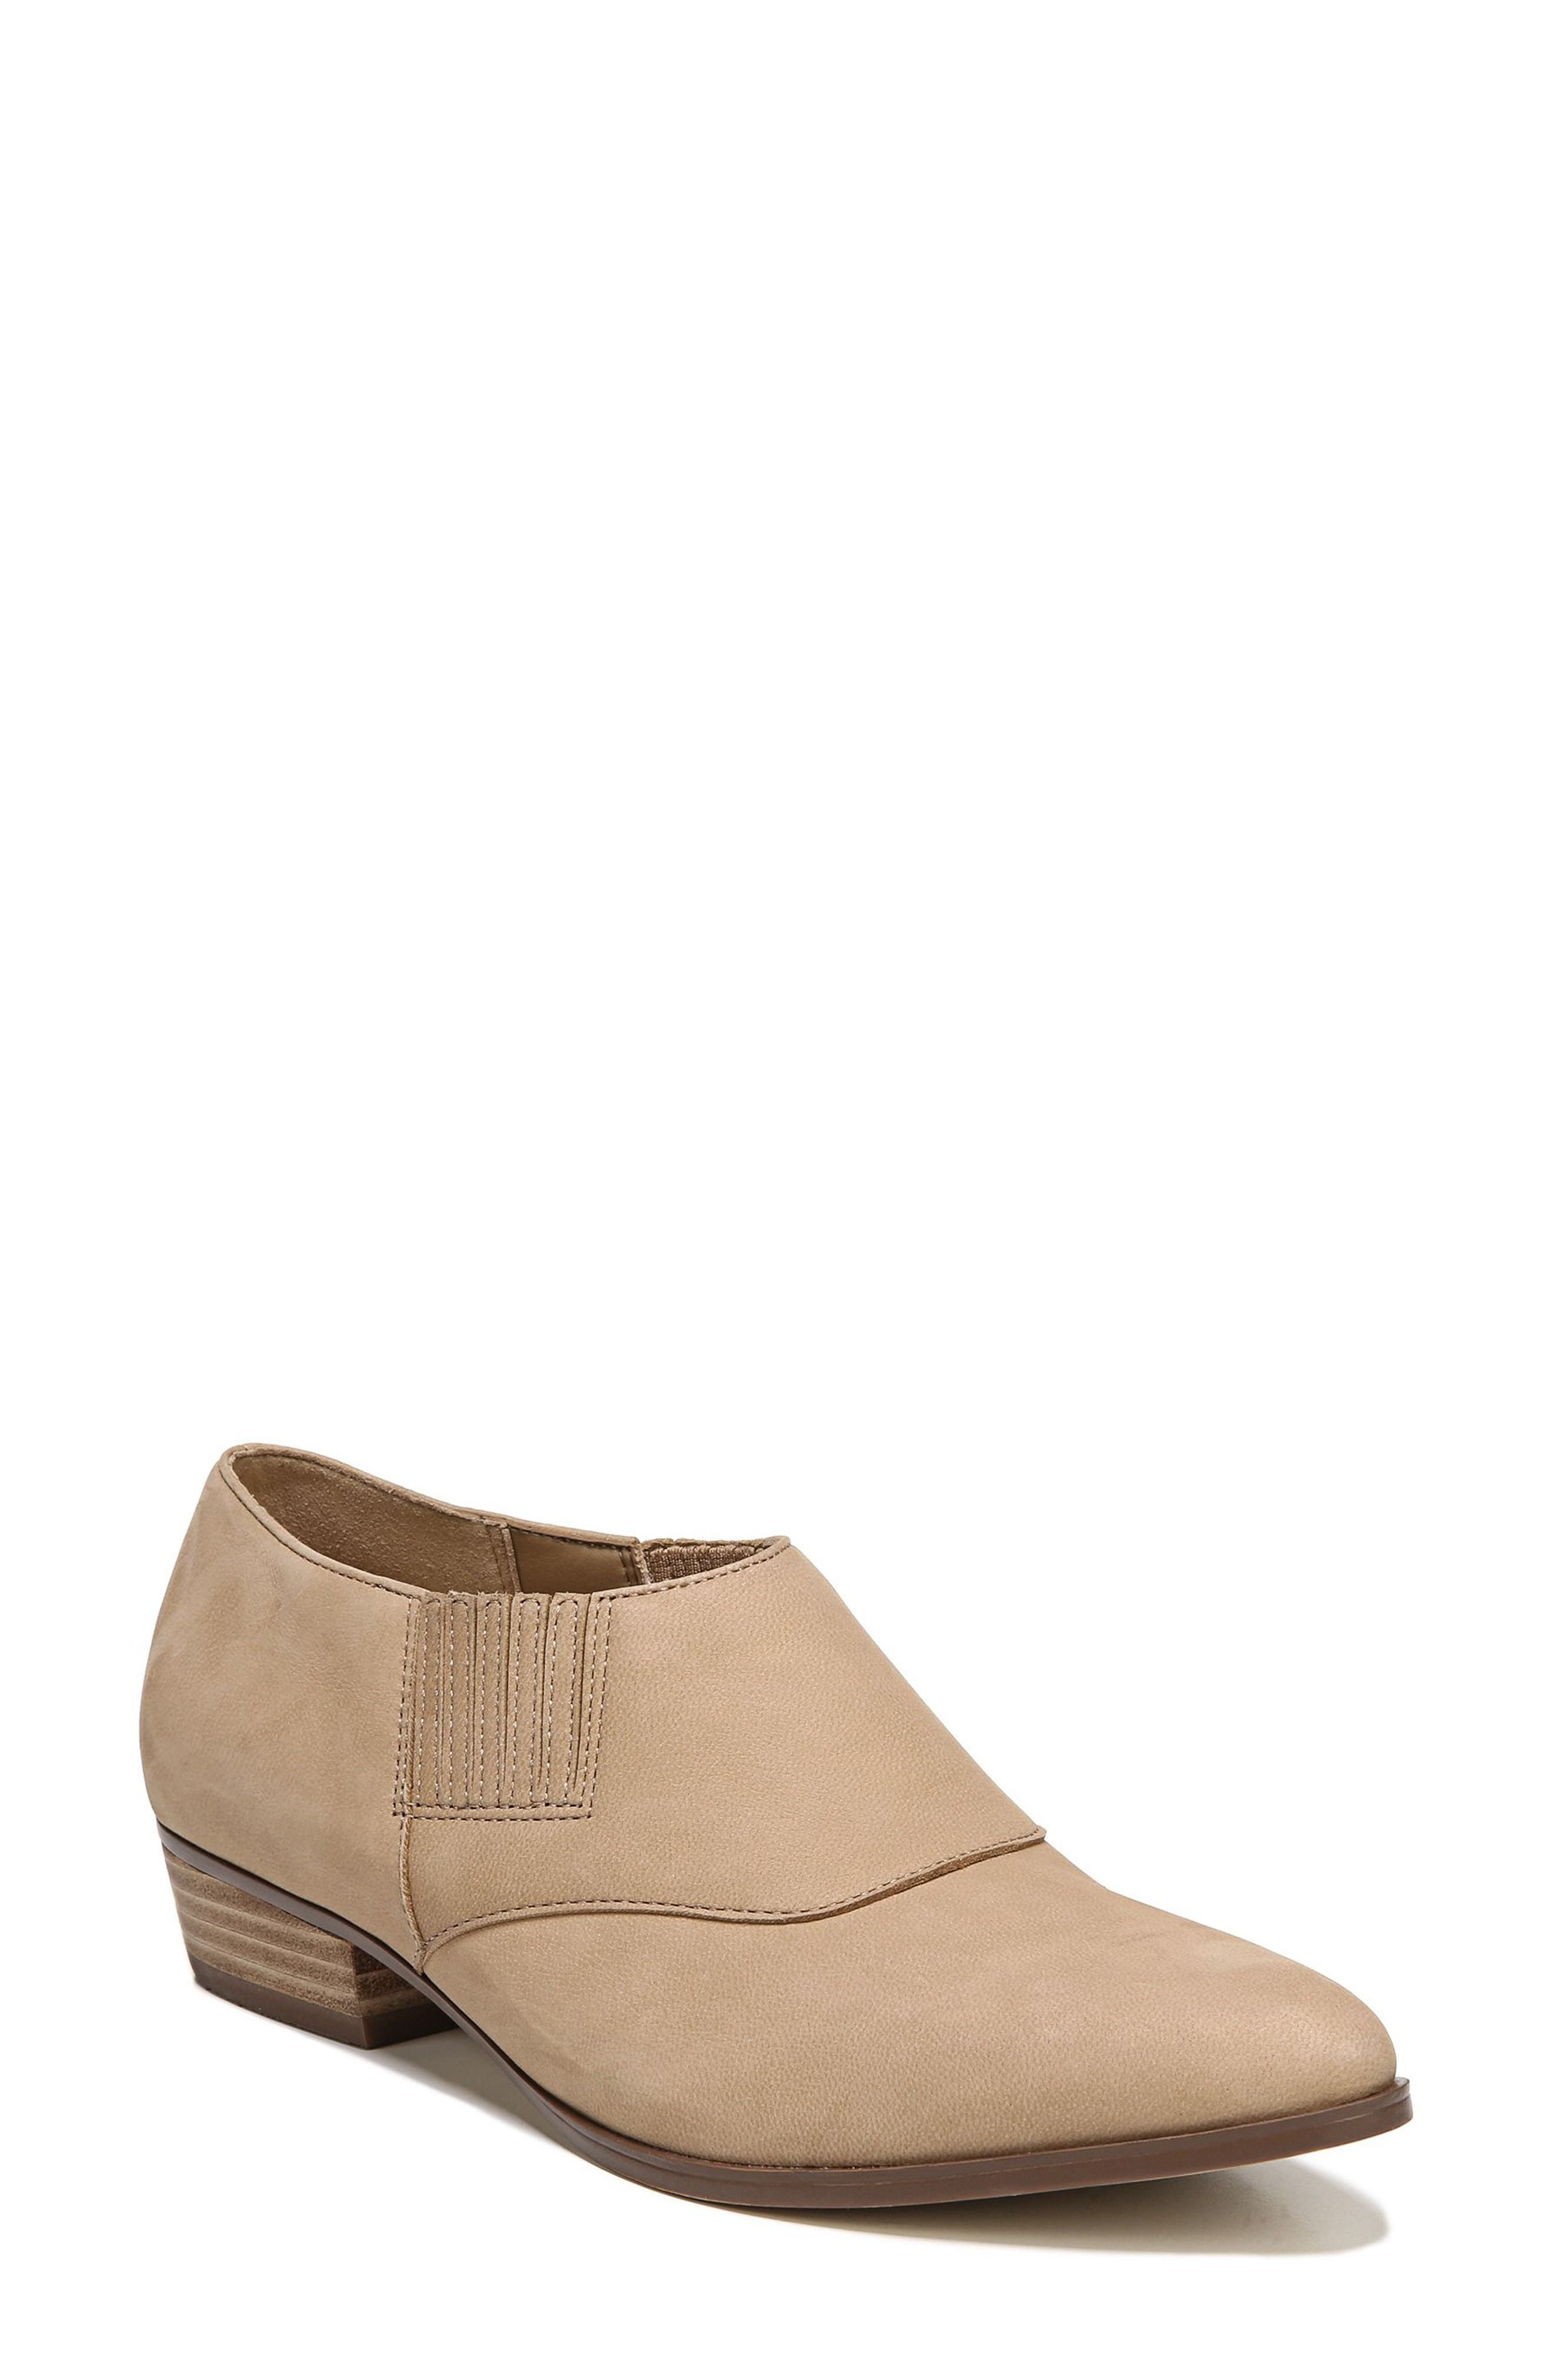 Blythe Bootie,                         Main,                         color, Toasted Barley Nubuck